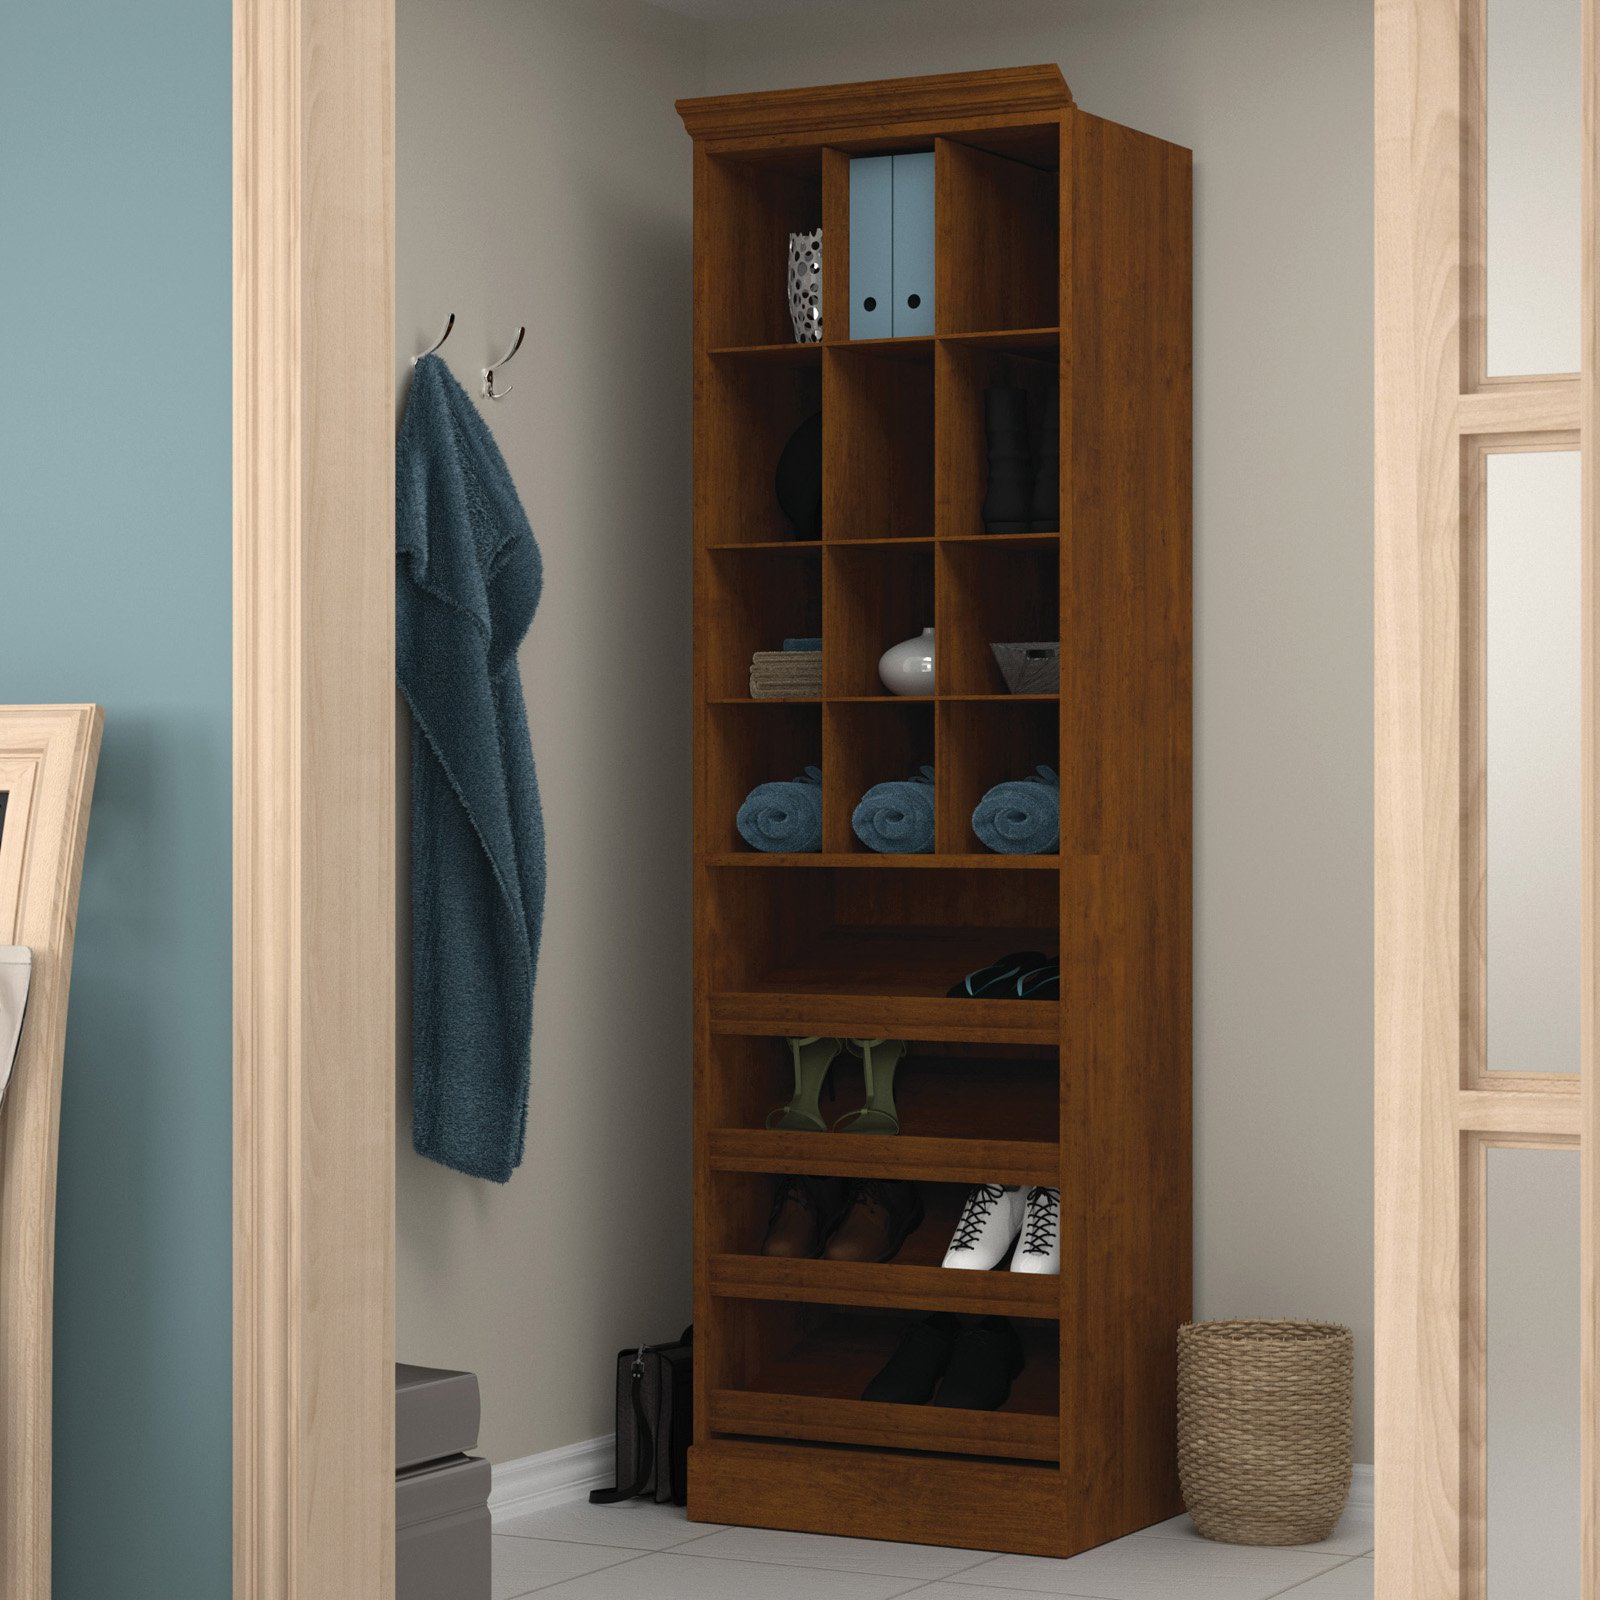 "Versatile by Bestar 25"" Cubby Storage unit in Tuscany Brown"